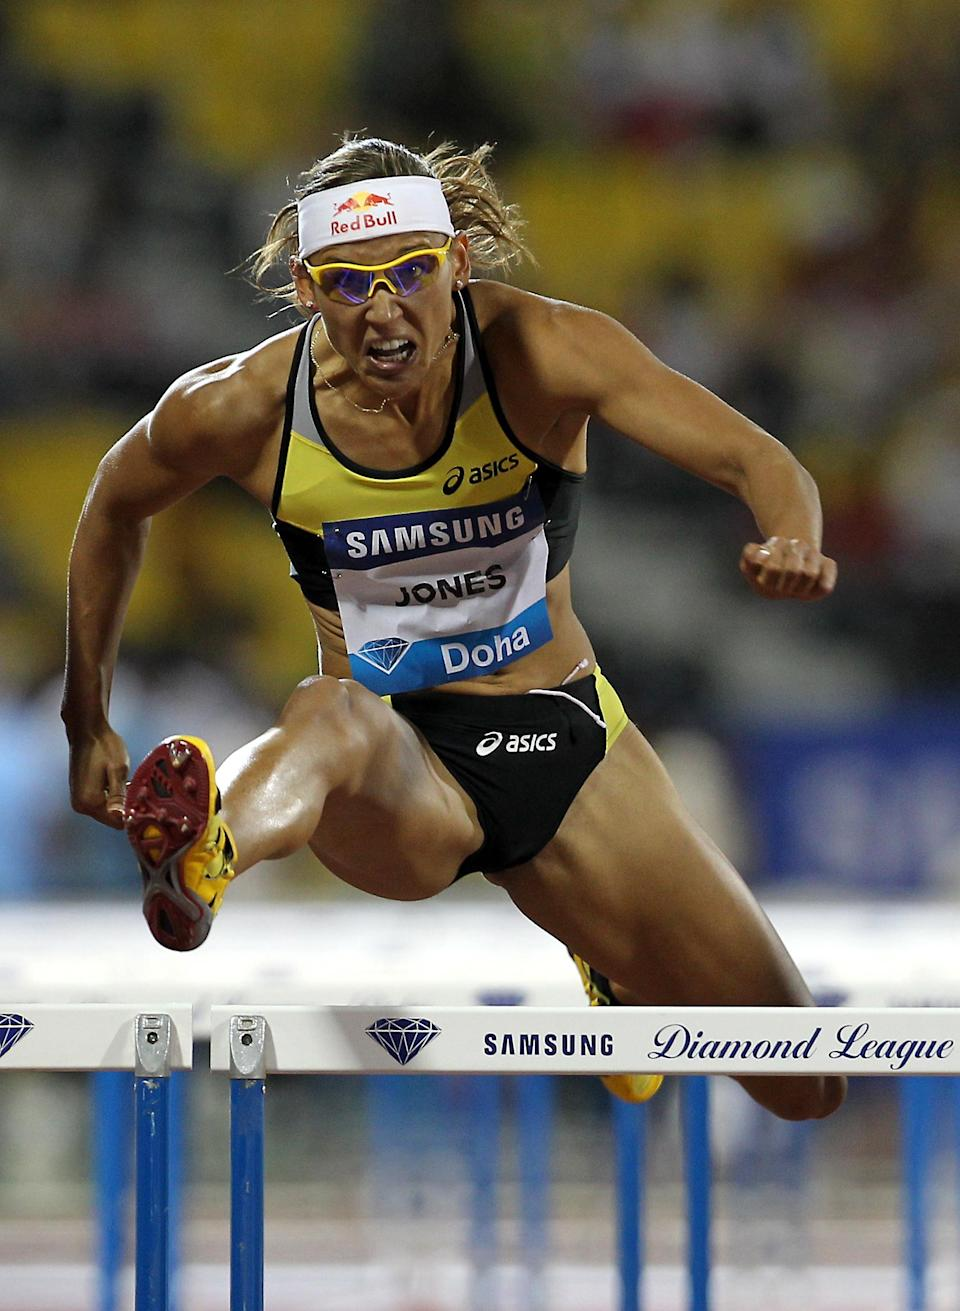 Lolo Jones of the US competes in the women's 100m hurdles at the IAAF Diamond League in Doha on May 6, 2011. (KARIM JAAFAR/AFP/Getty Images)